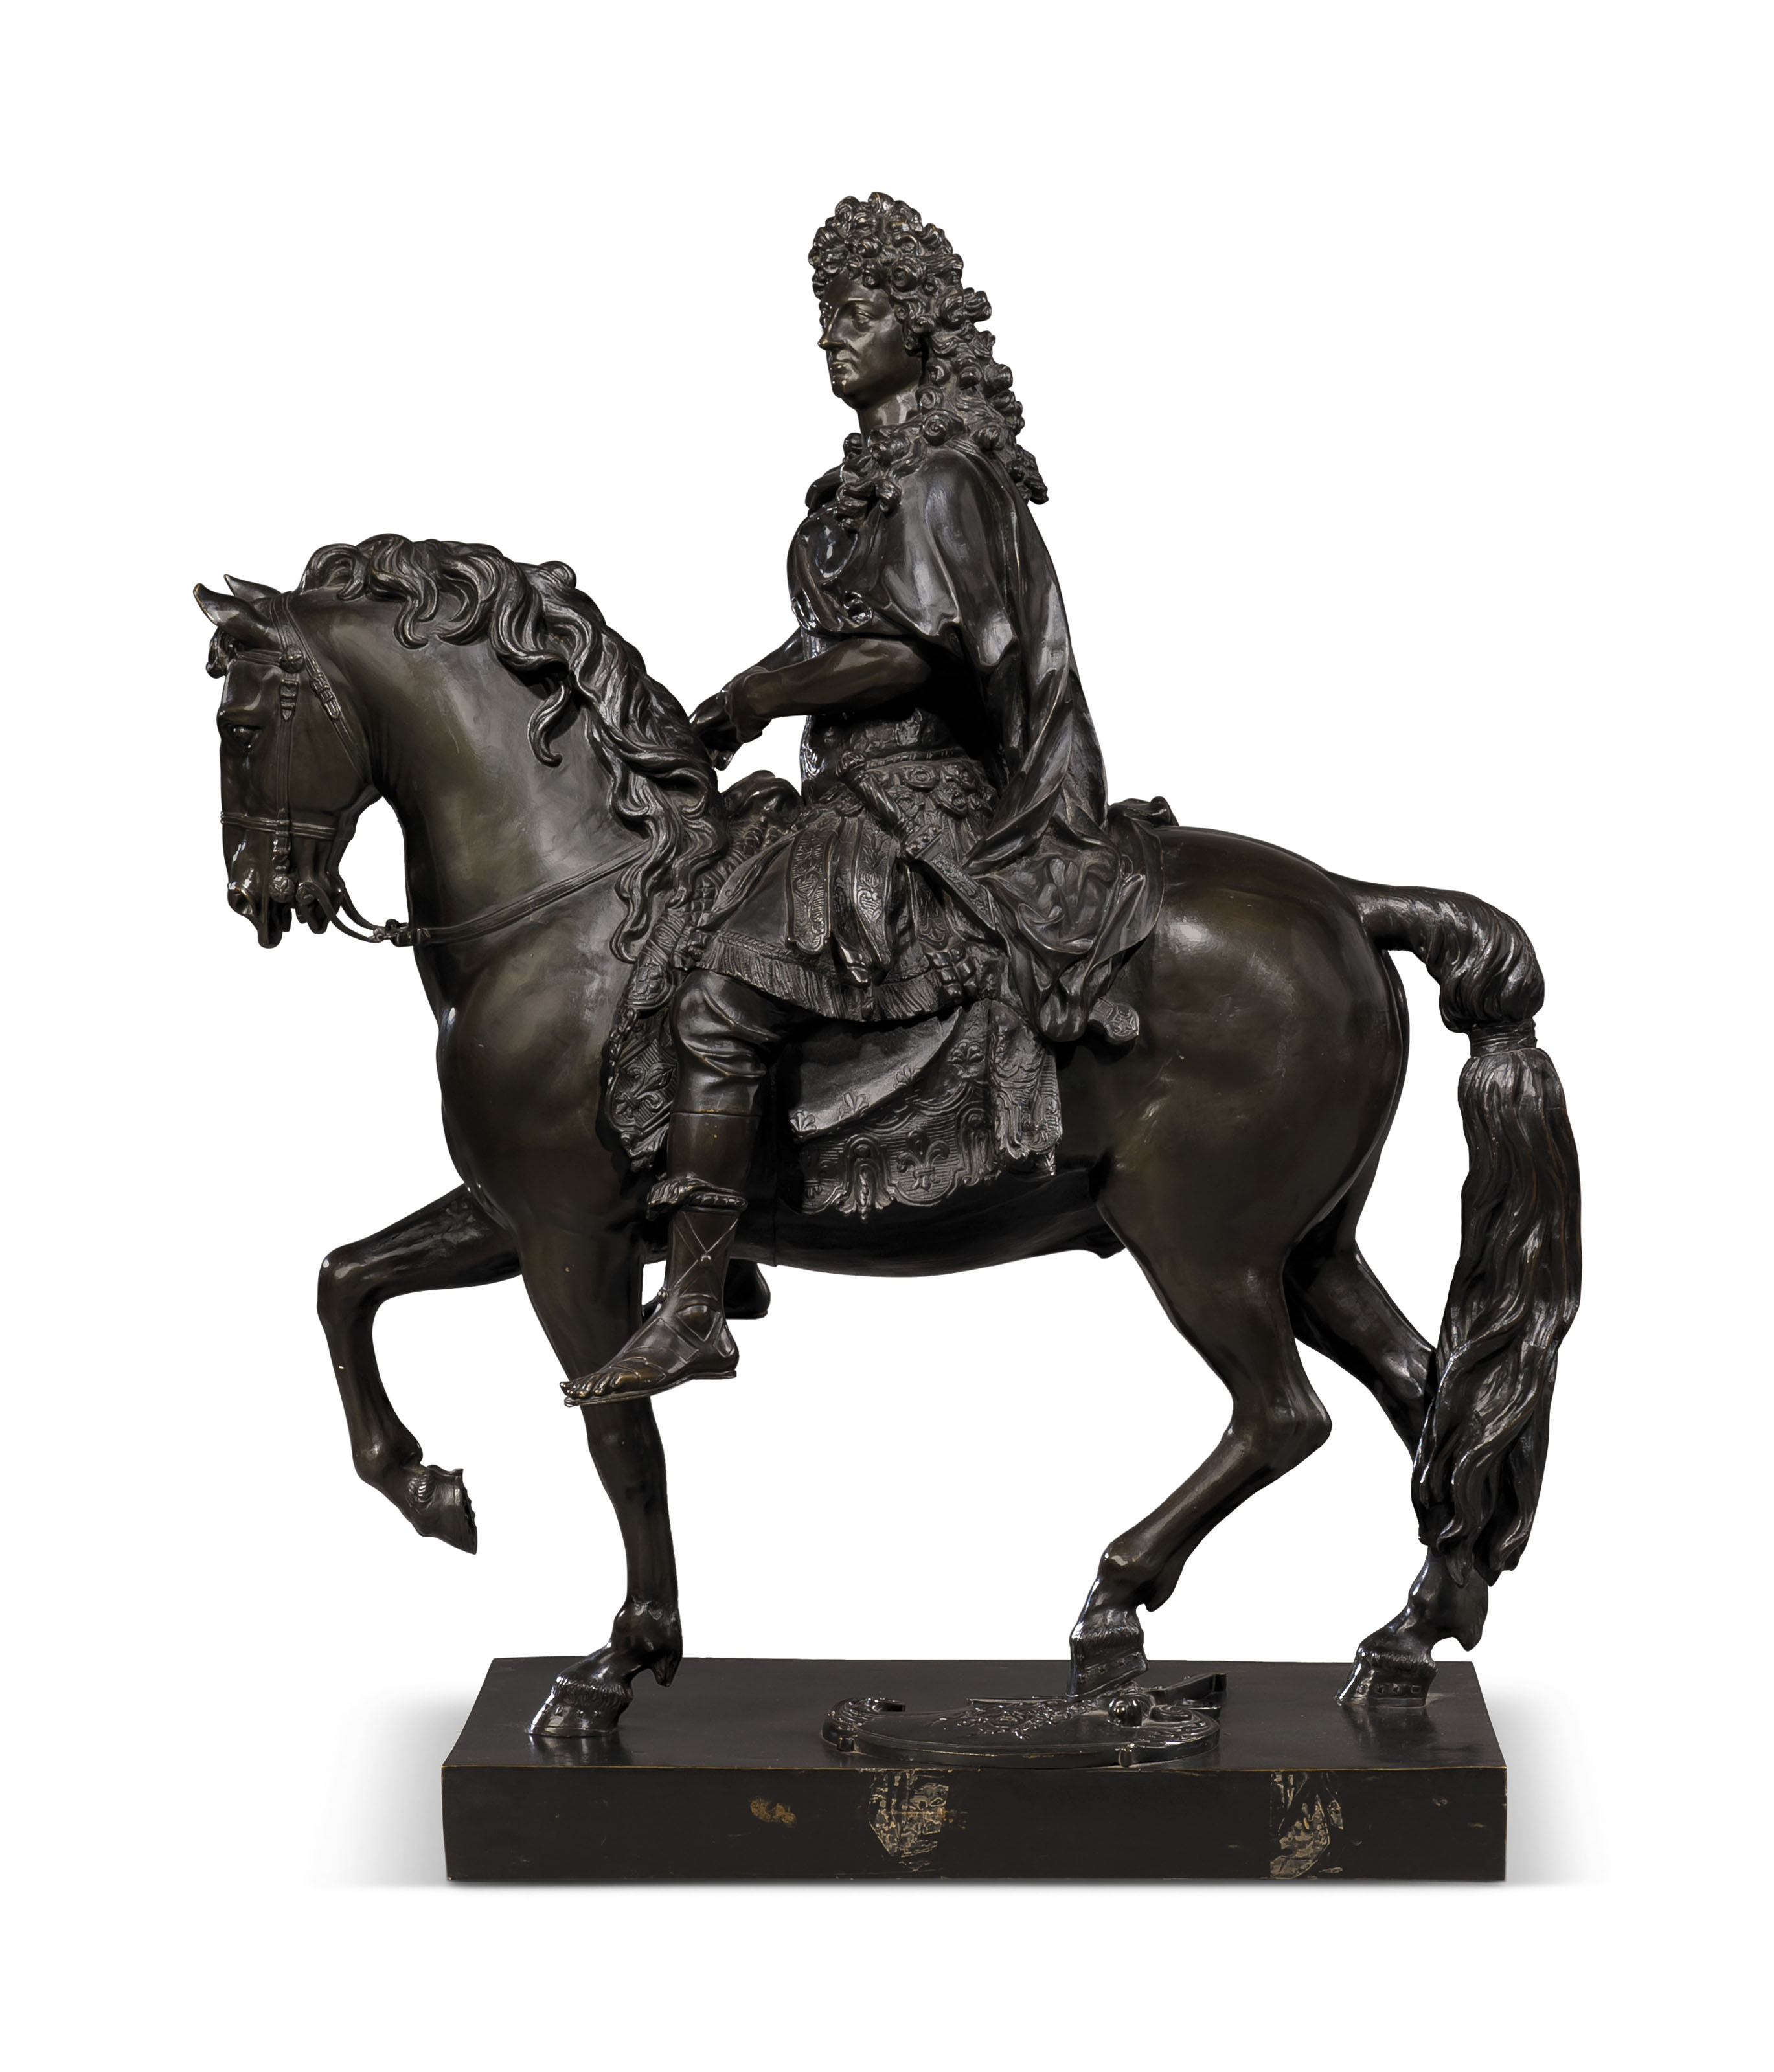 A FRENCH PATINATED-BRONZE EQUESTRIAN FIGURE OF LOUIS XIV